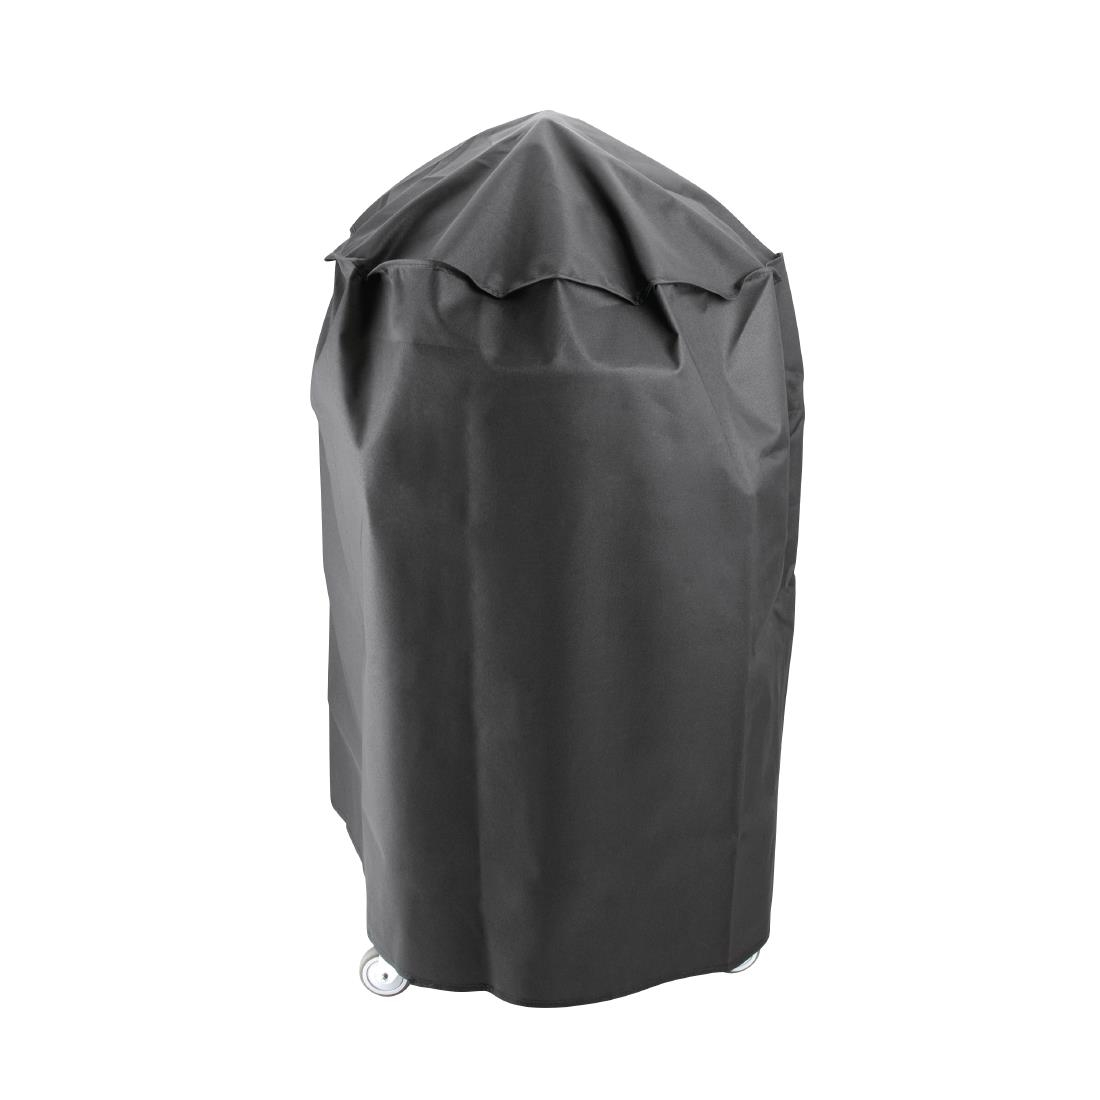 Image of Buffalo Ceramic Kamado BBQ Cover